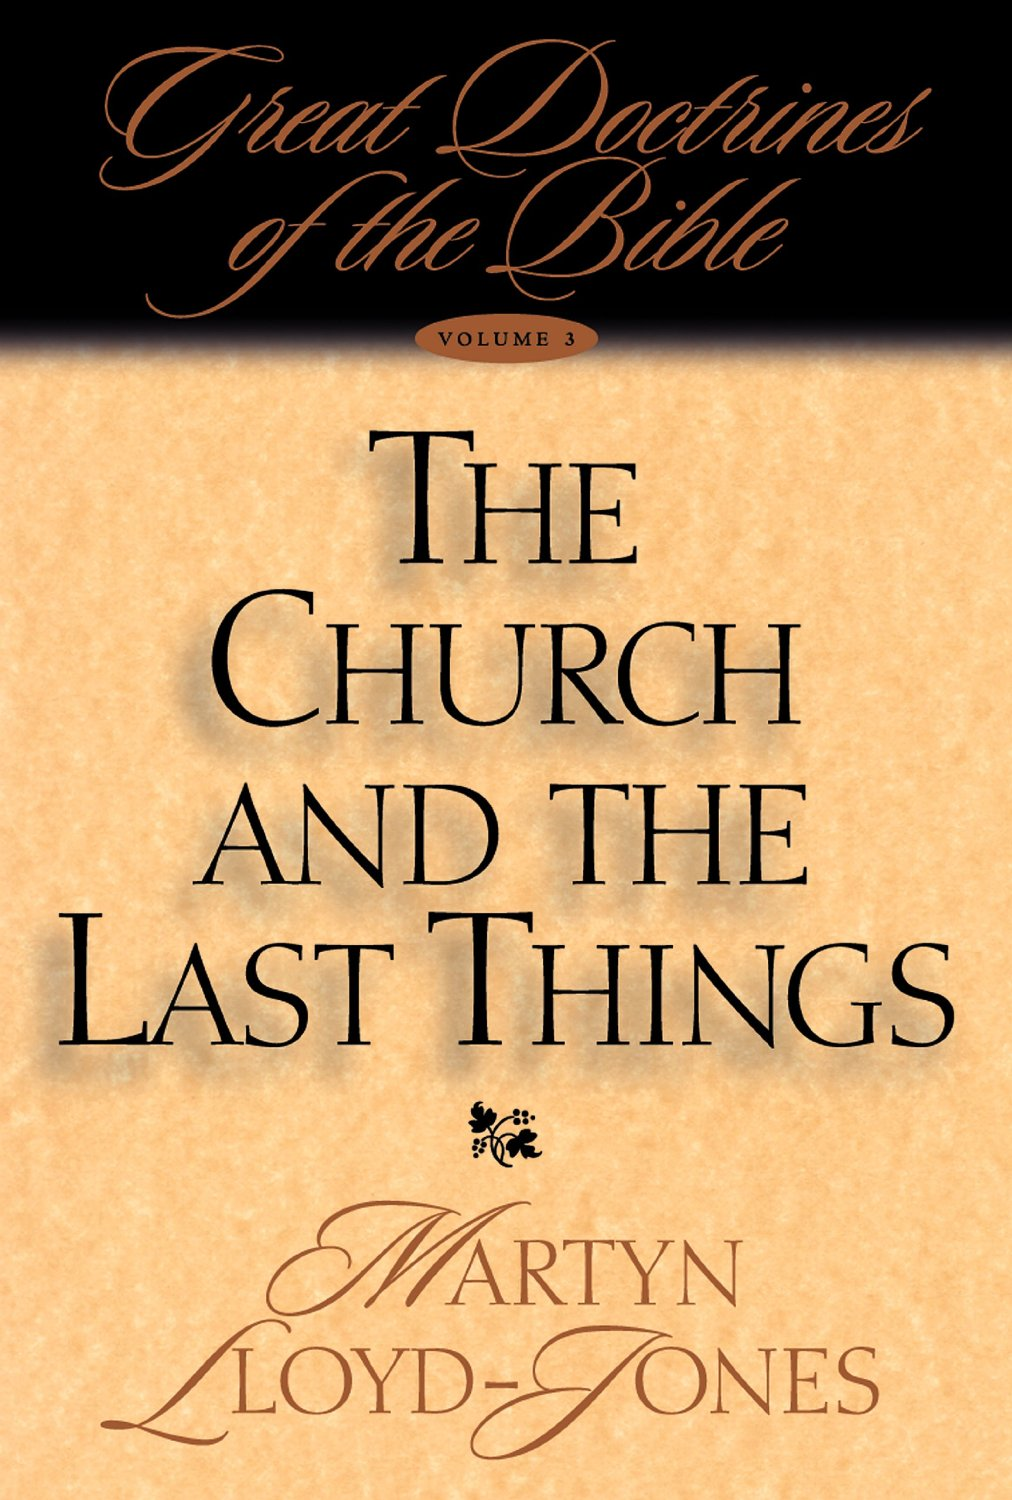 D. Martyn Lloyd-Jones-The Church And The Last Things-